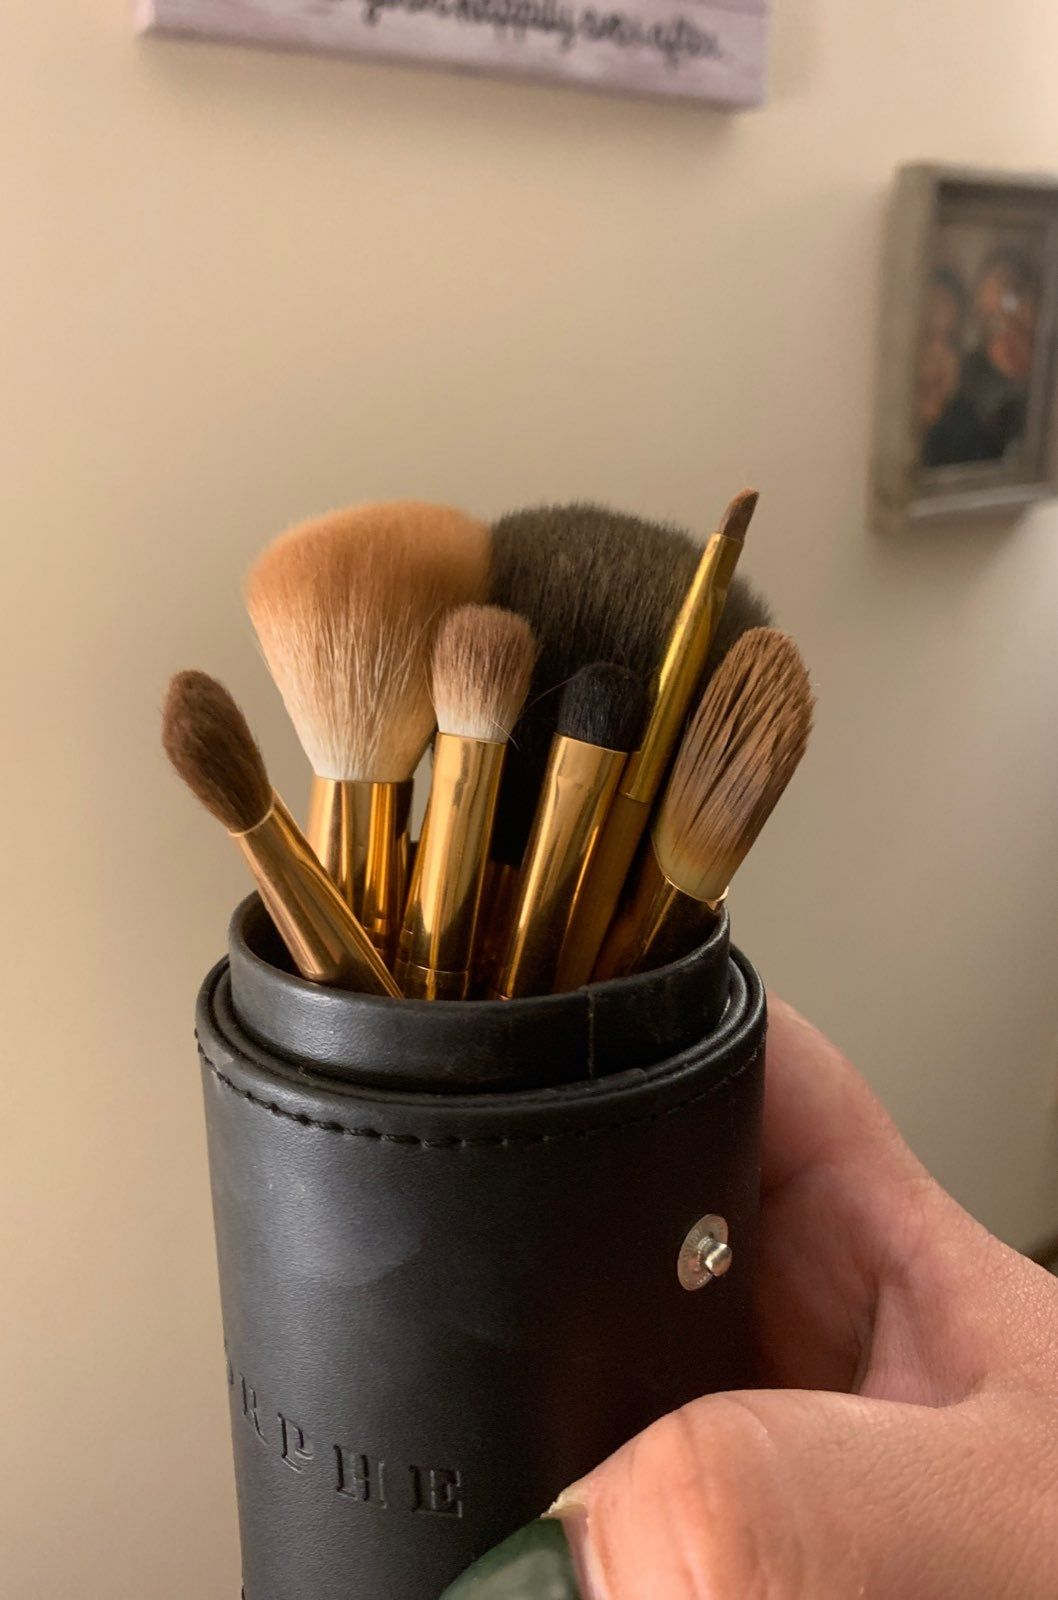 Morphe Brushes ROSÉ BAES BRUSH COLLECTION. Used once